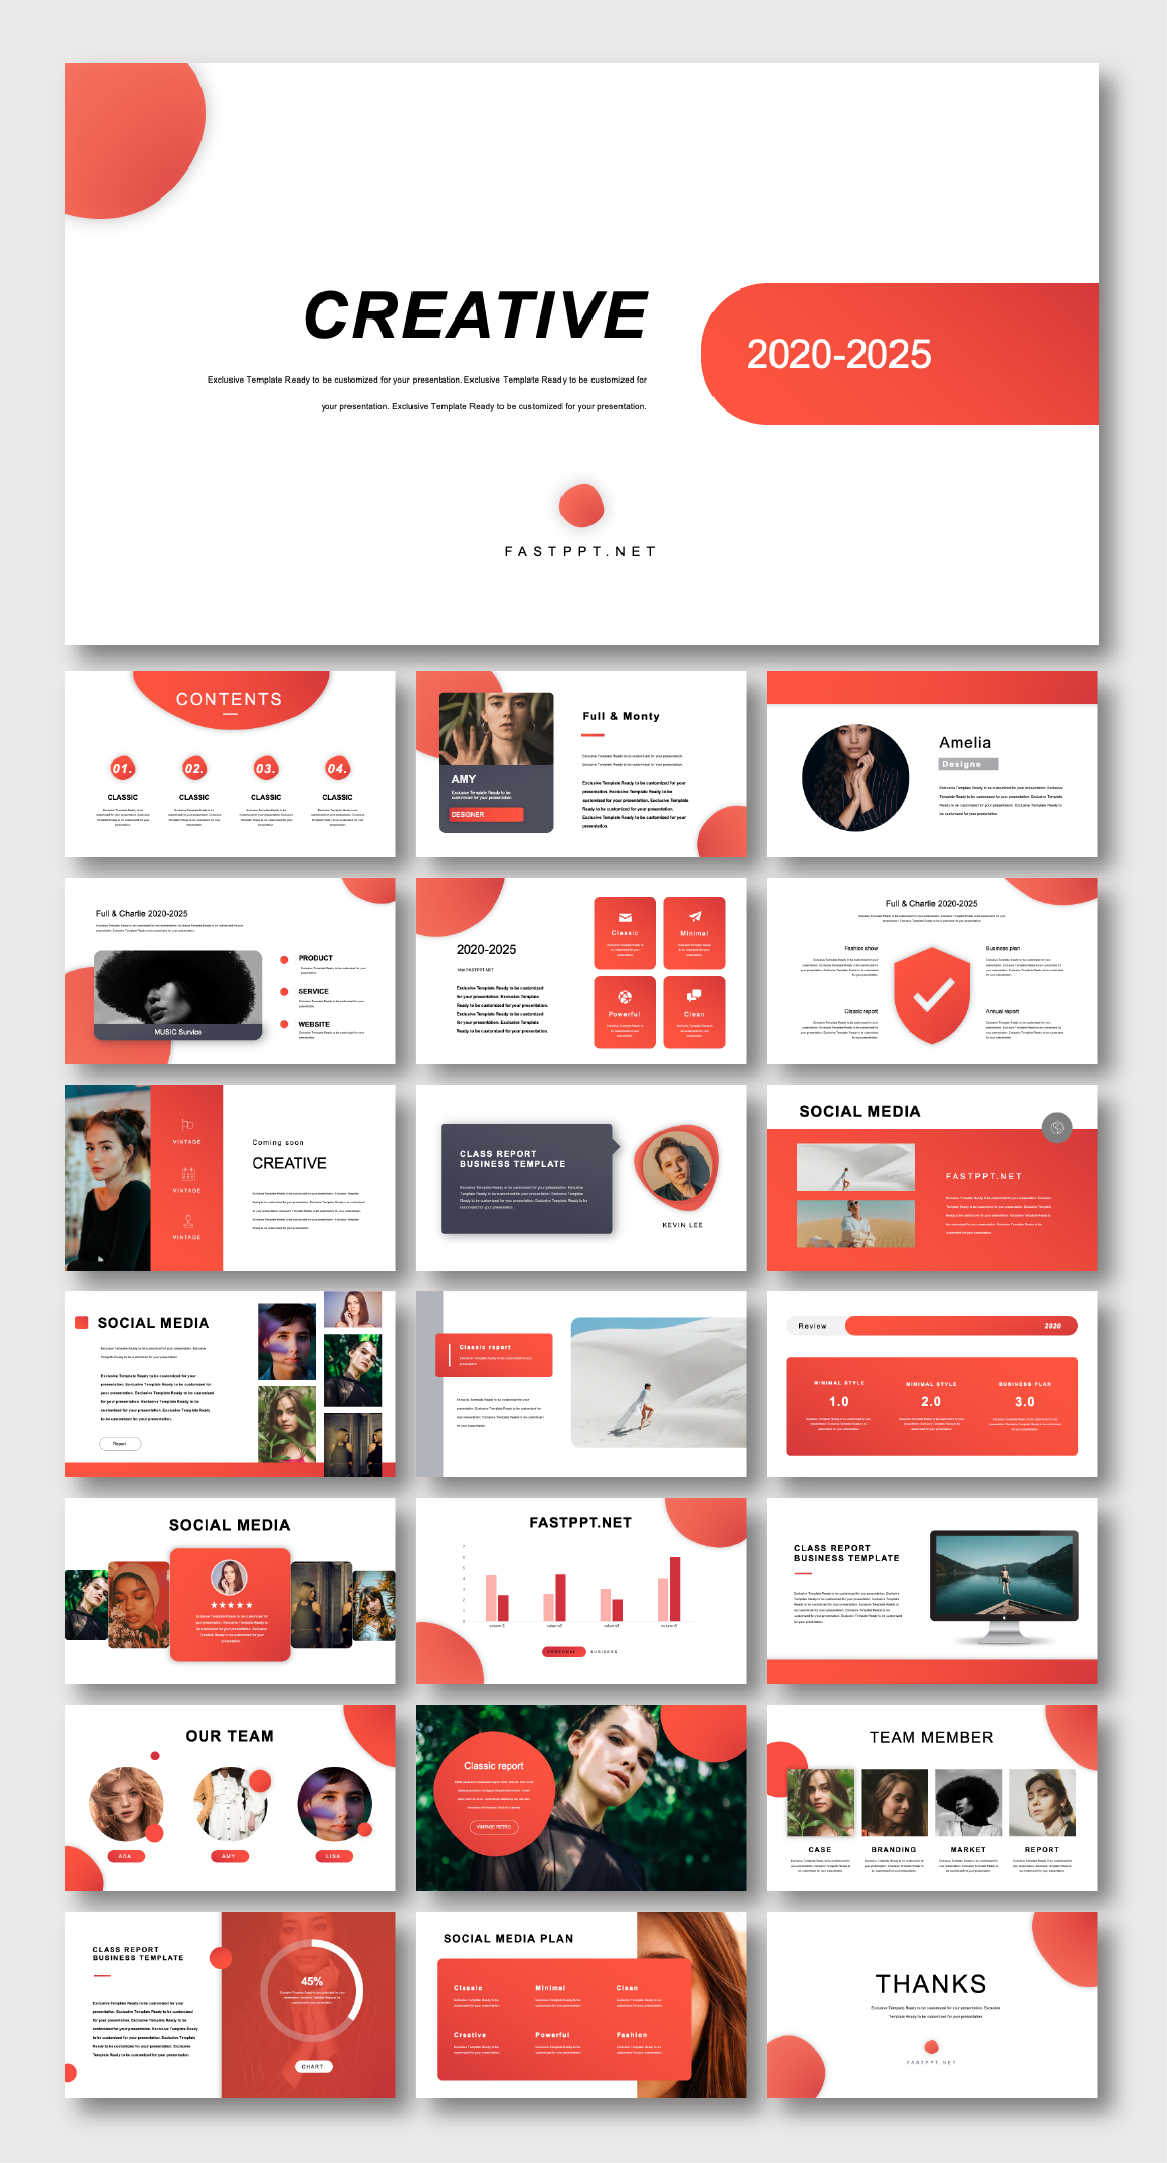 2 in 1 Business Plan & Report Presentation Template – Original and high quality PowerPoint Templates download